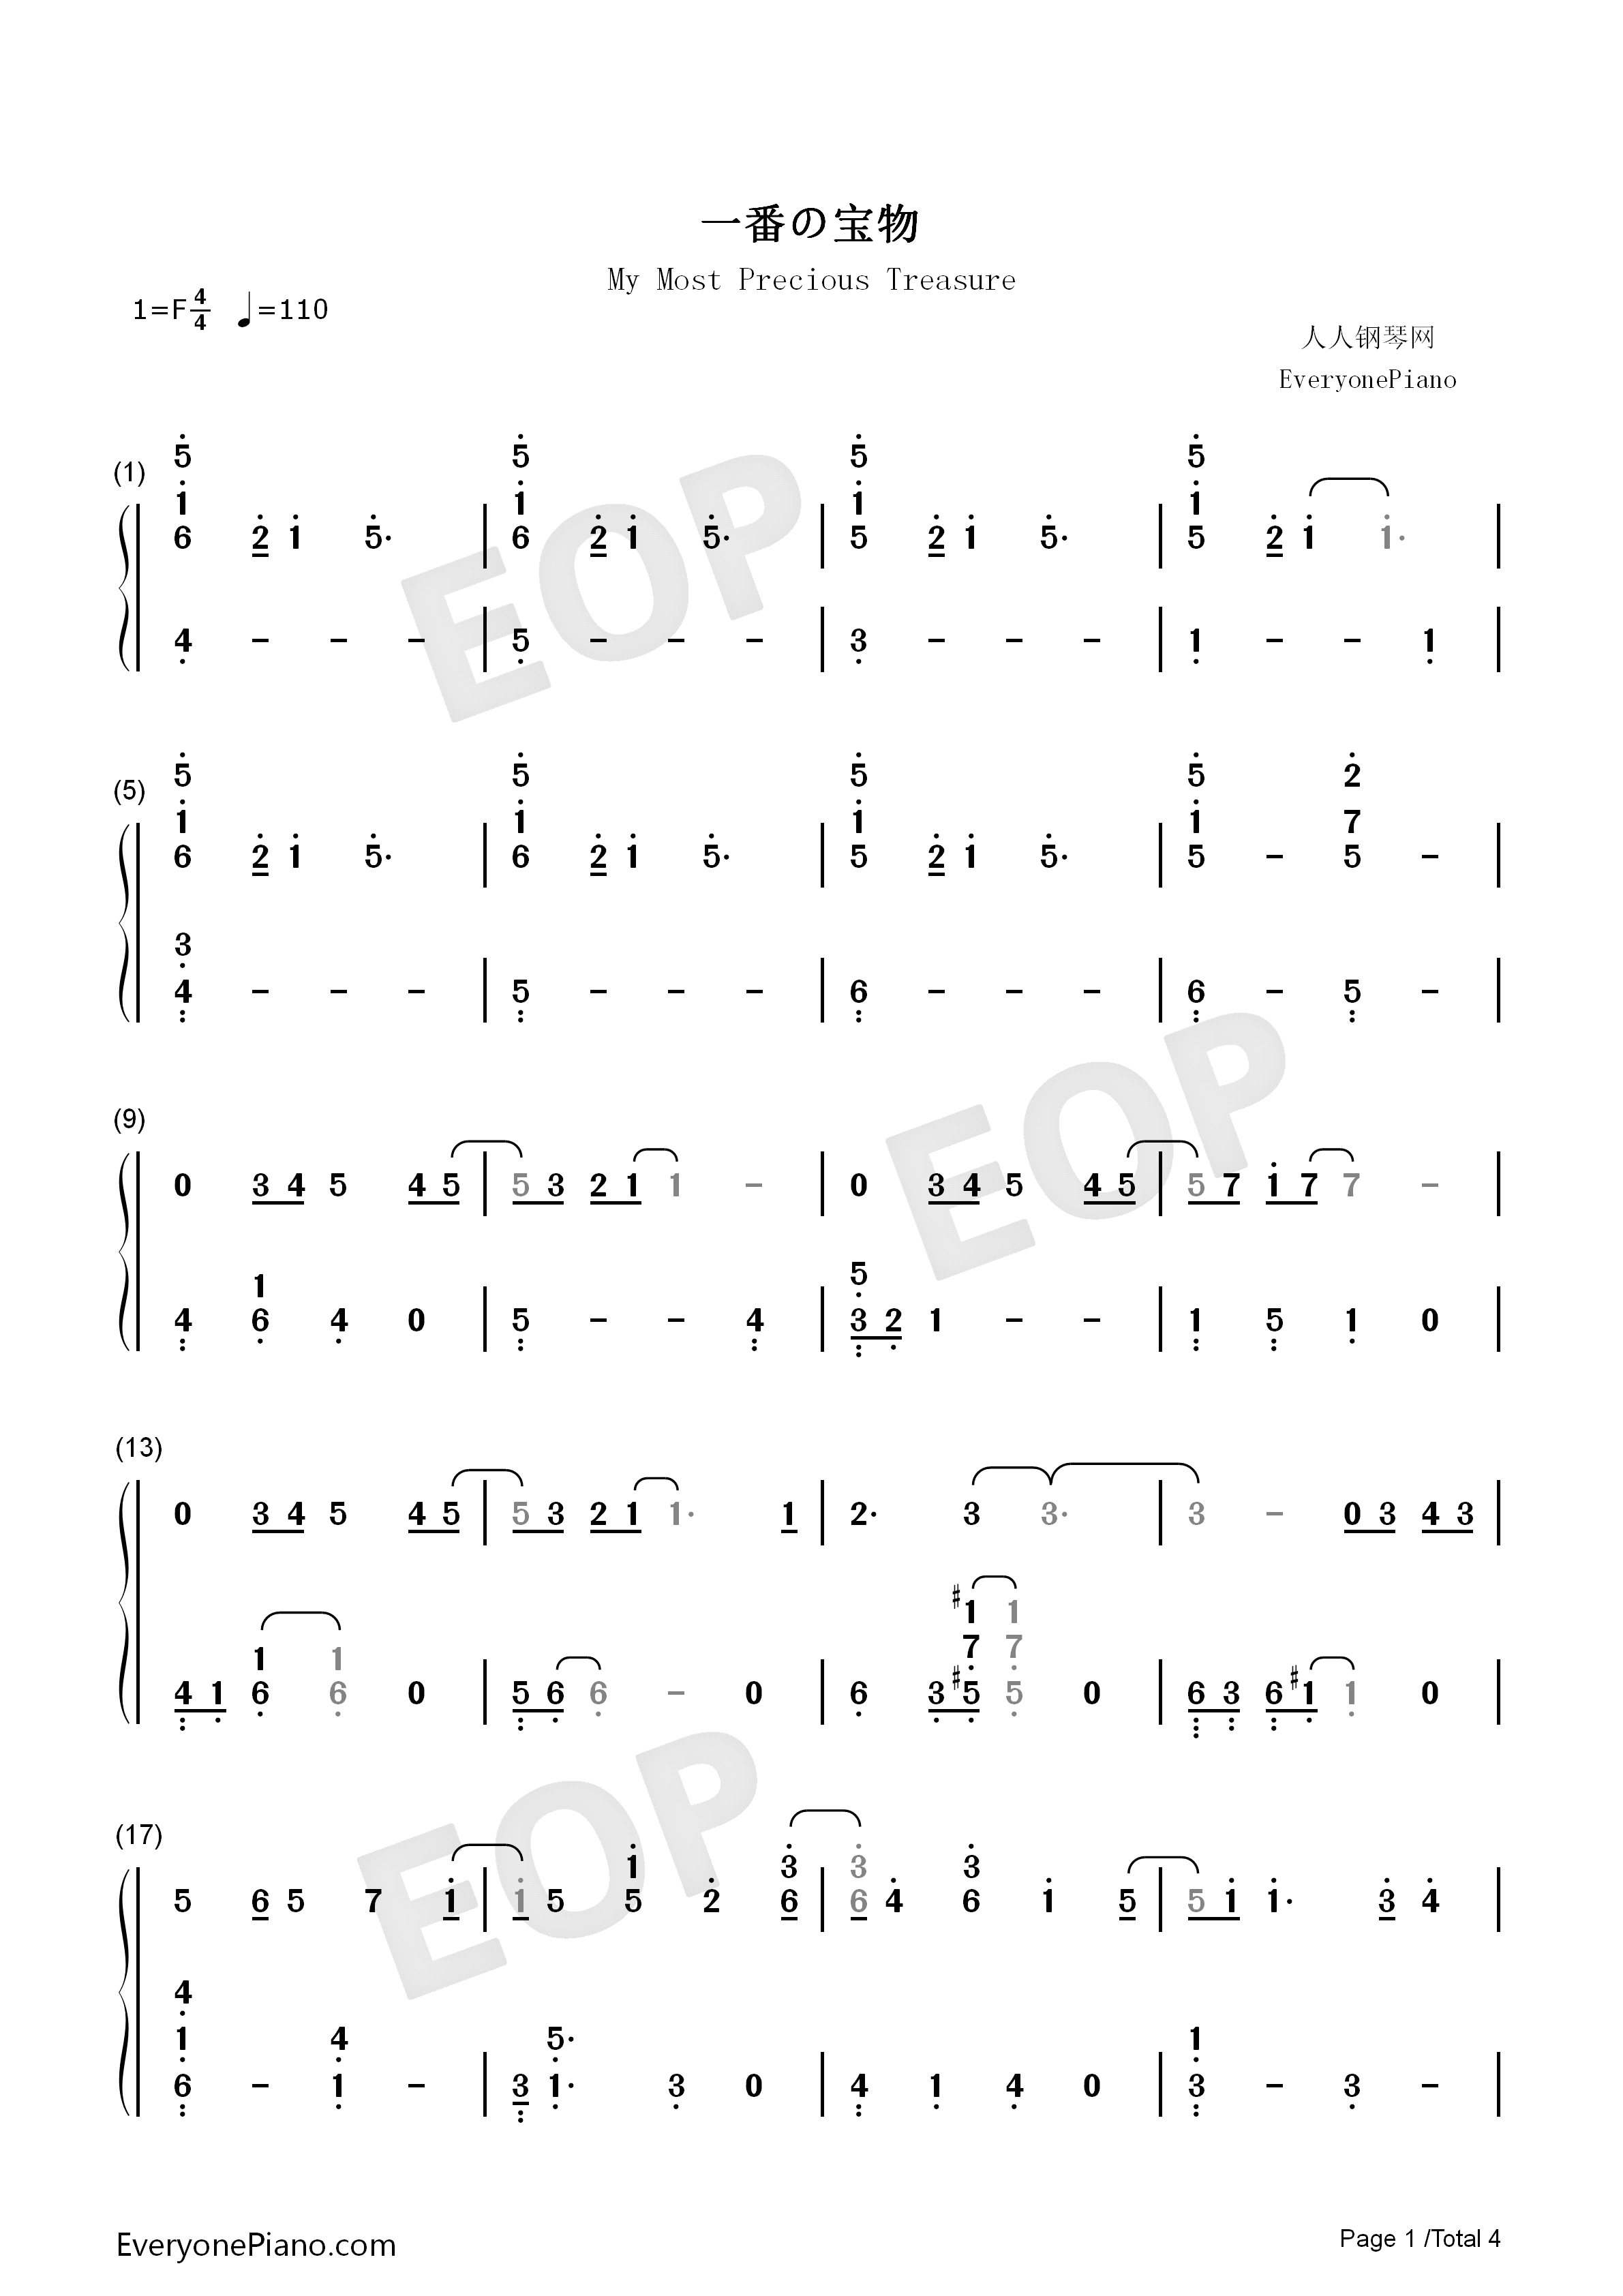 My Most Precious Treasure Angel Beats Numbered Musical Notation Preview